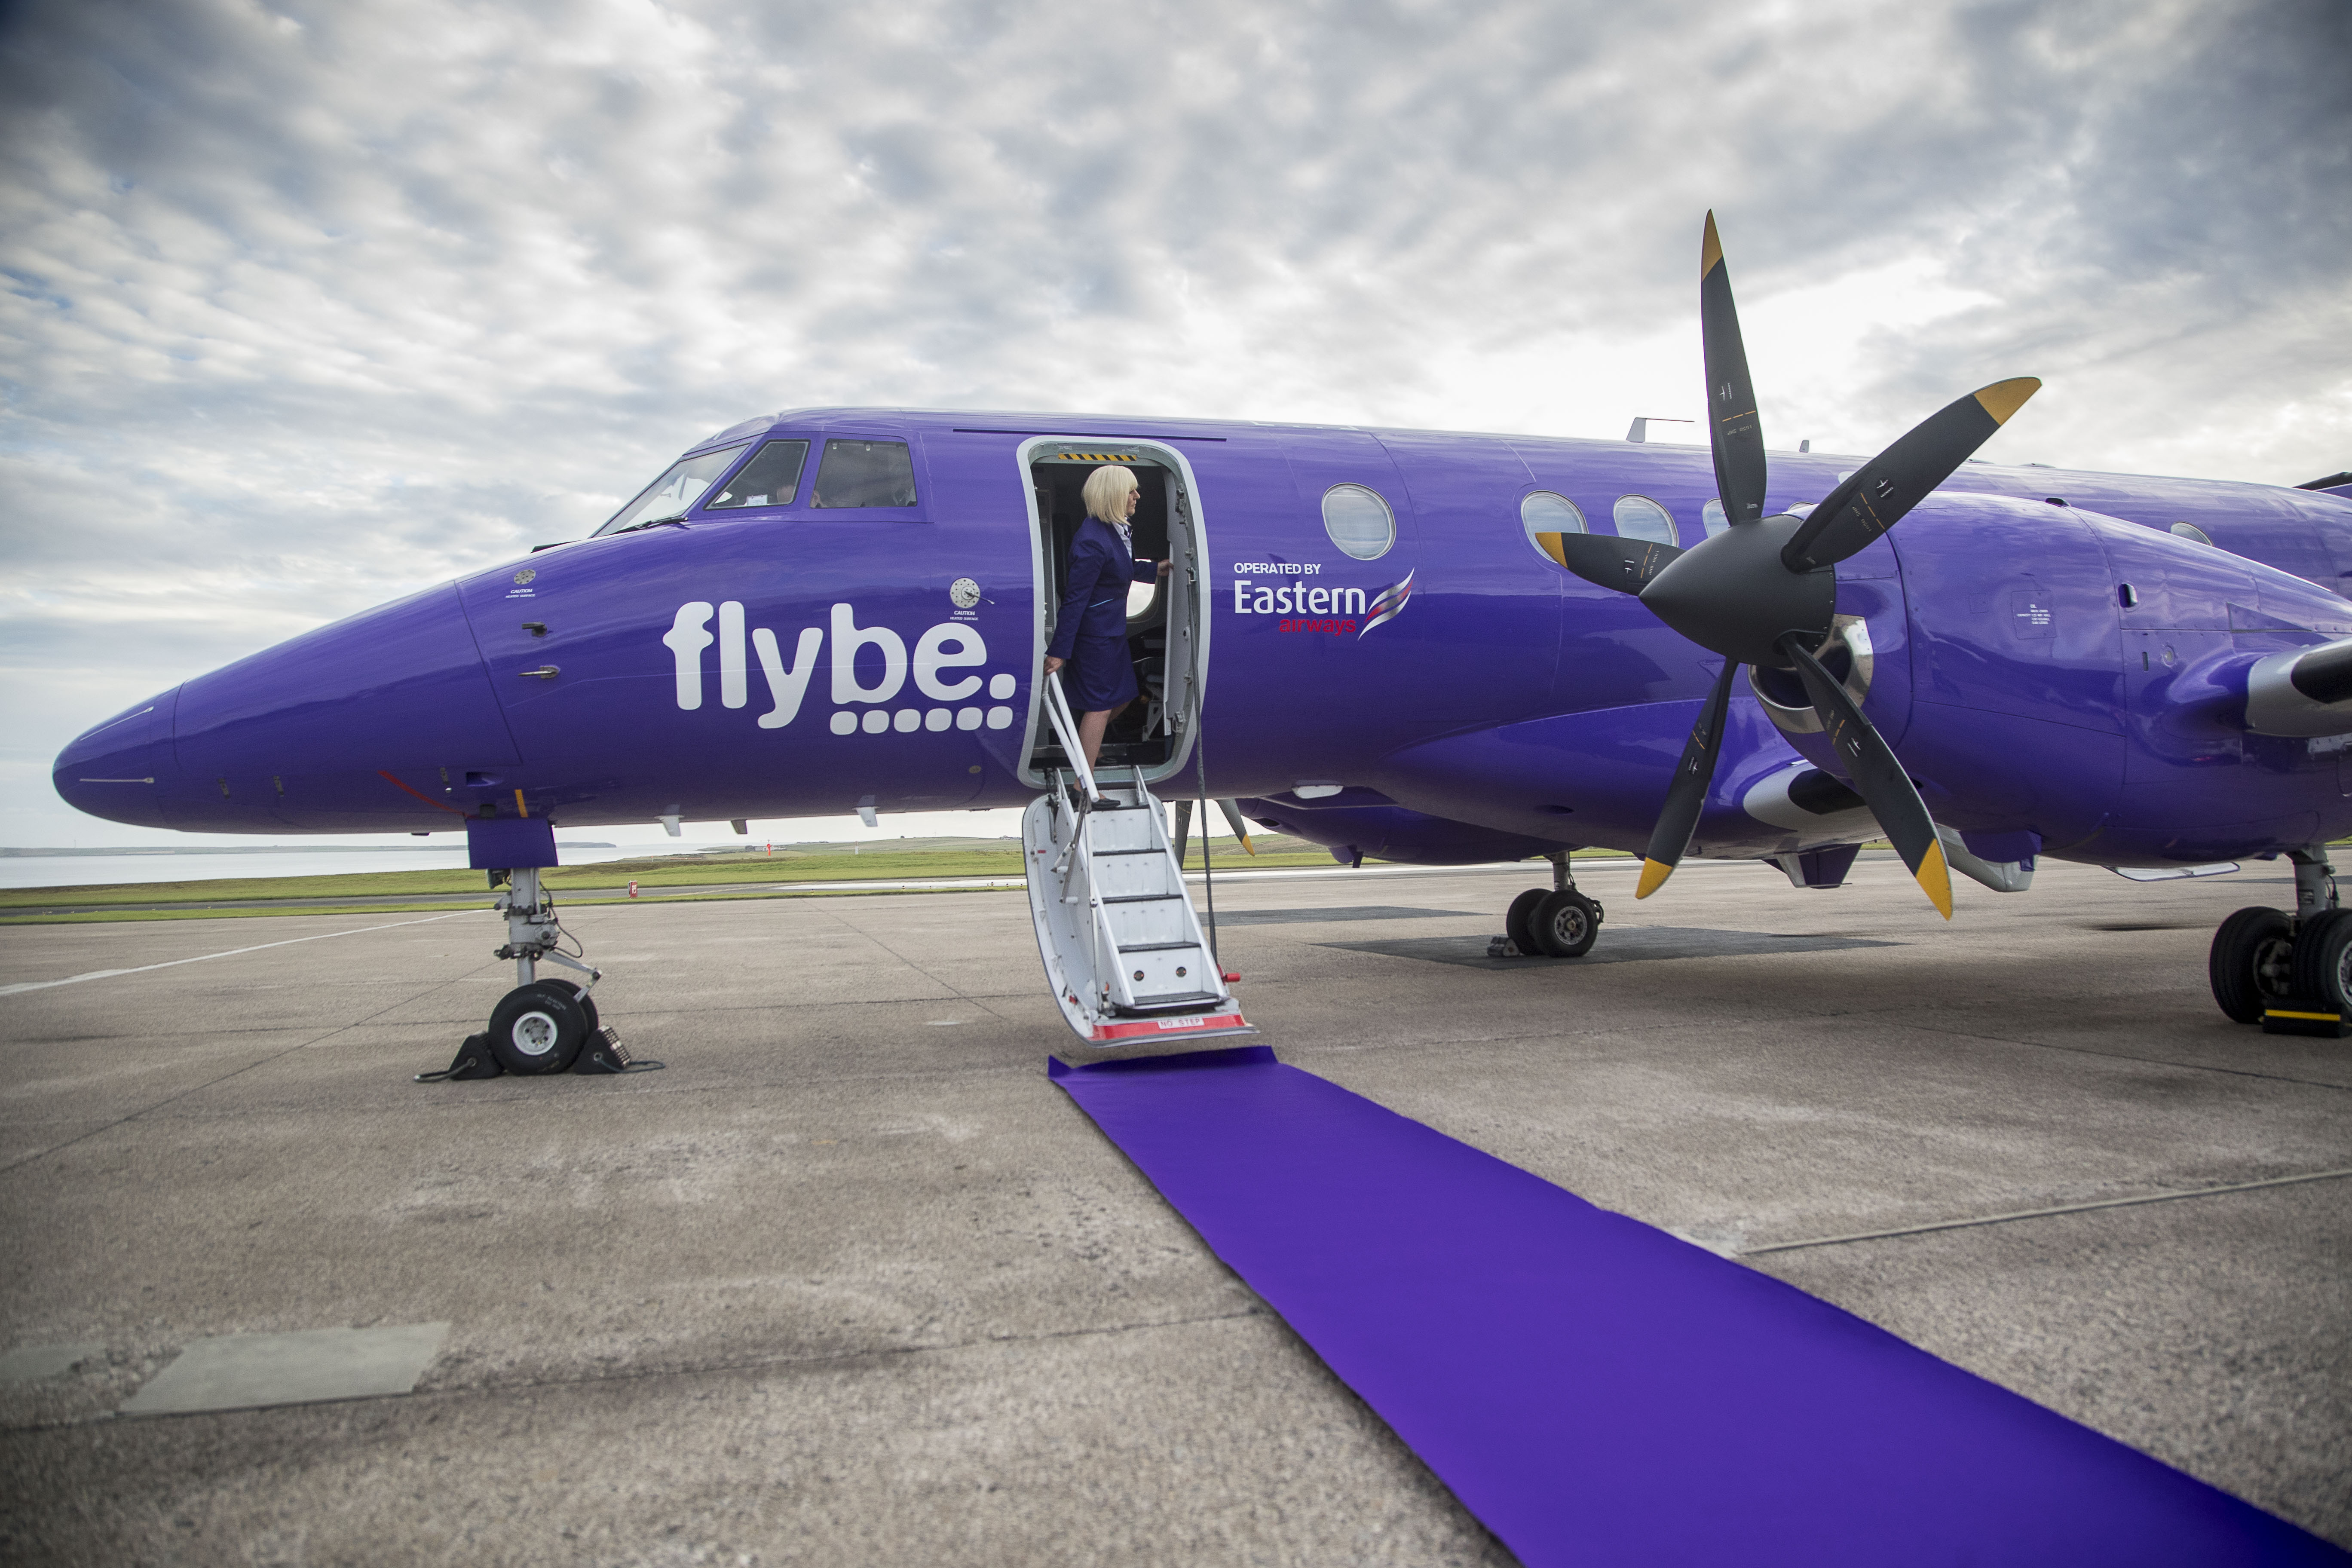 Flybe are the equity partner of Eastern Airways.